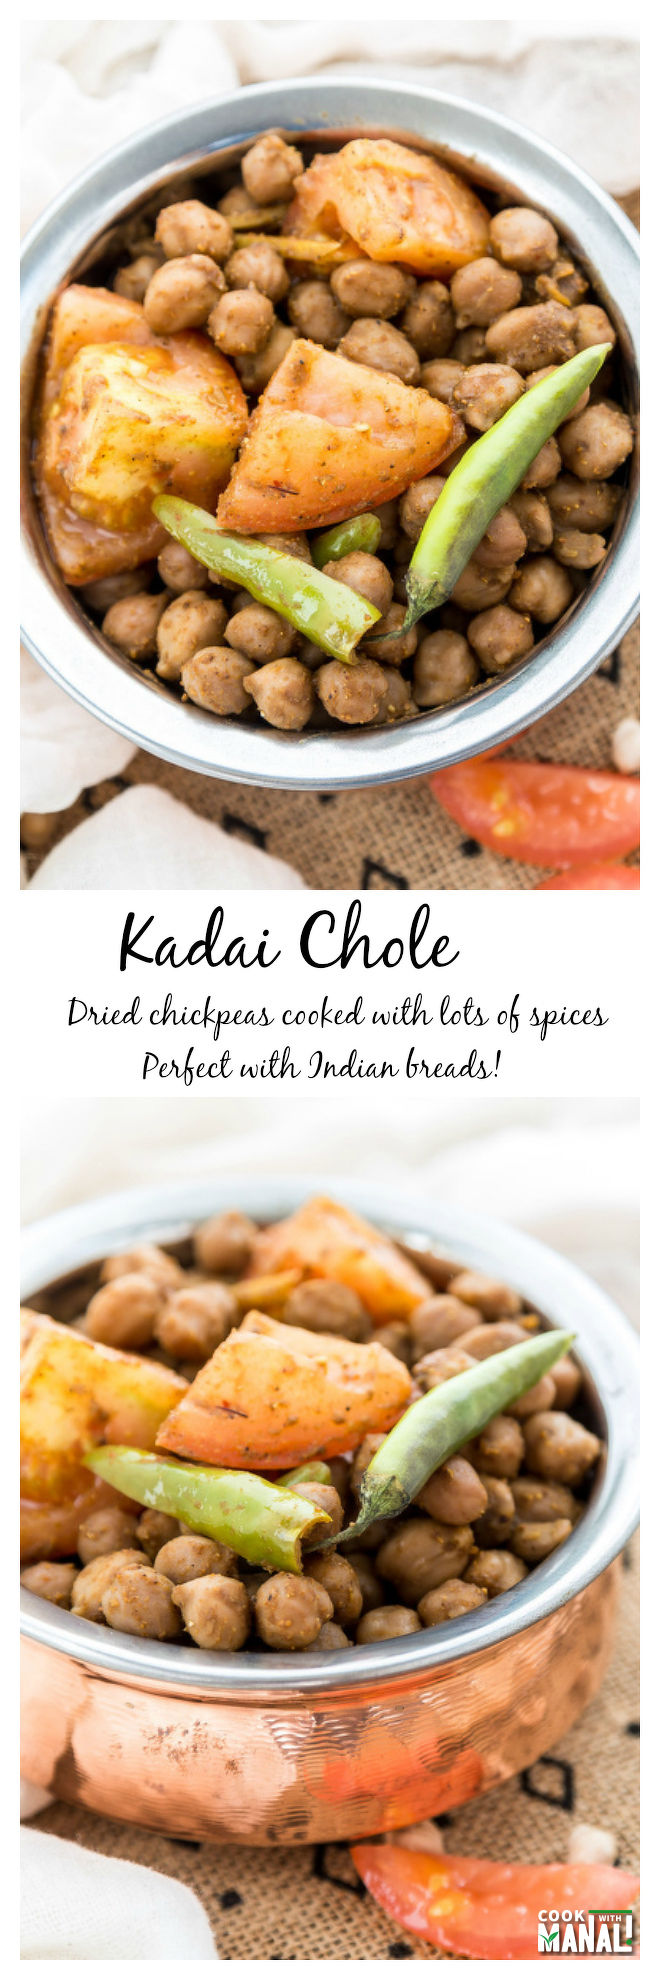 Kadhai-Chole Collage